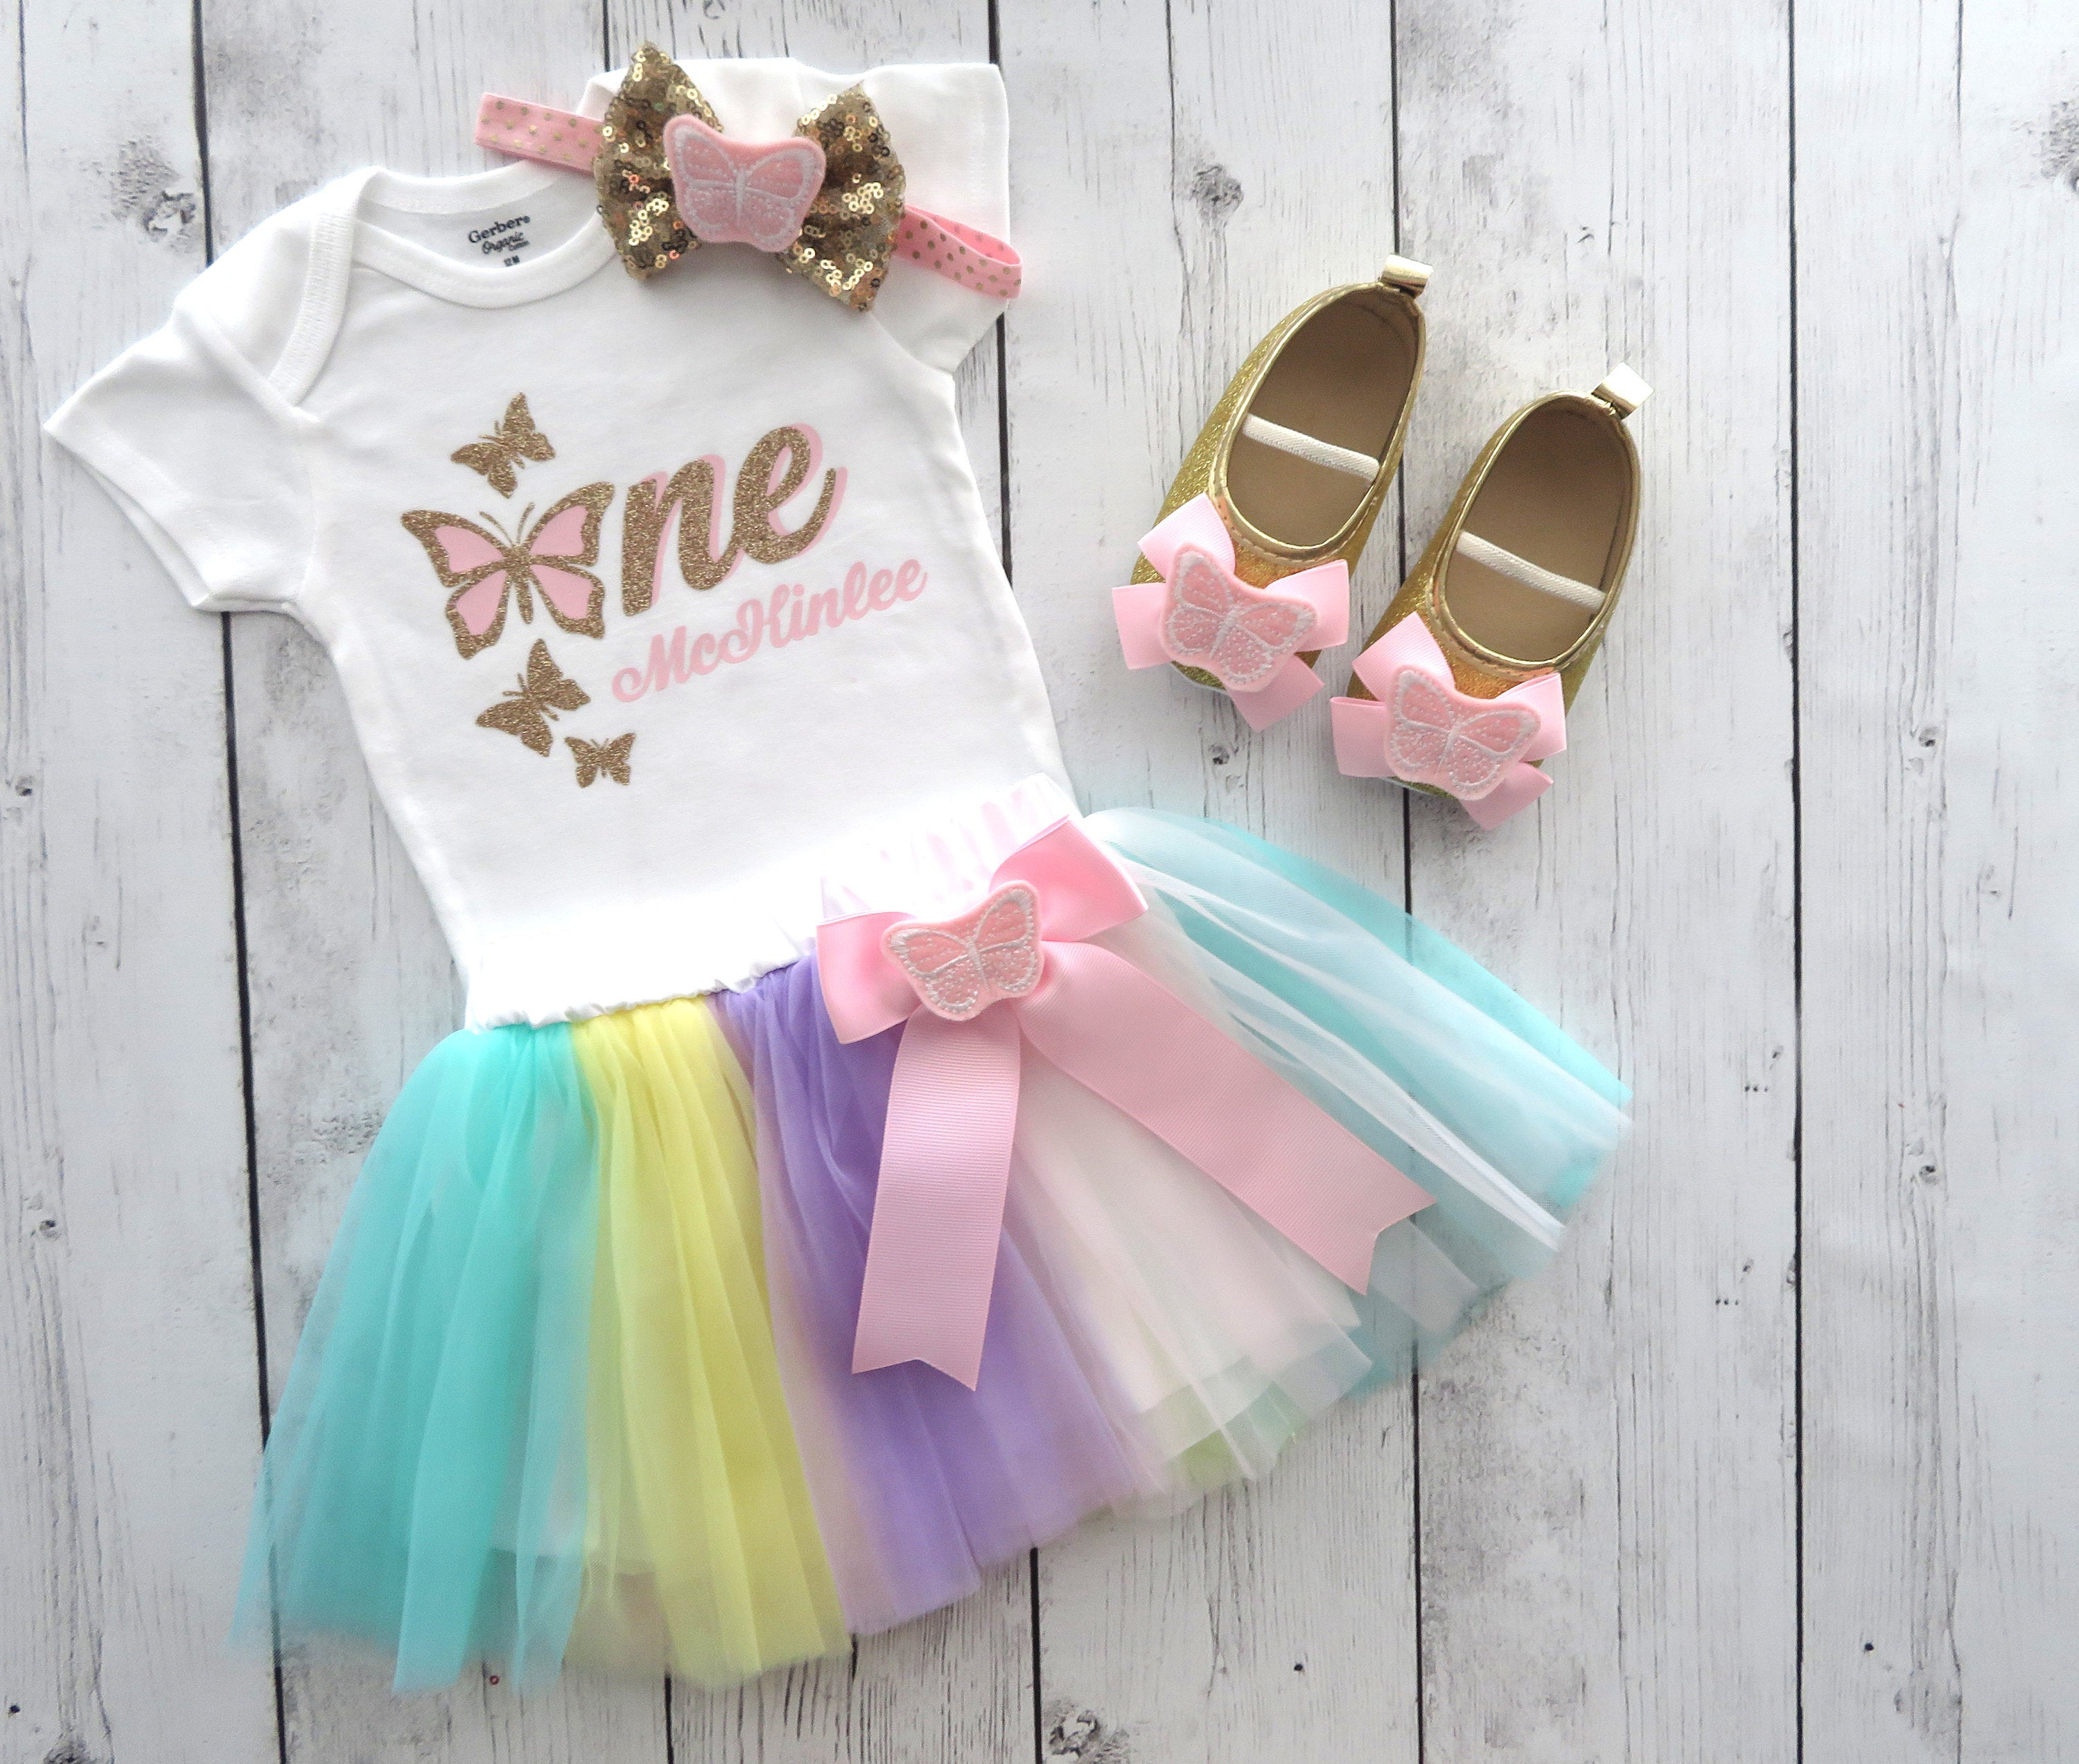 Butterfly First Birthday Outfit with Tutu Skirt and Bow and Butterfly Shoes - 1st bday outfit girl, butterfly tutu outfit, butterfly bday